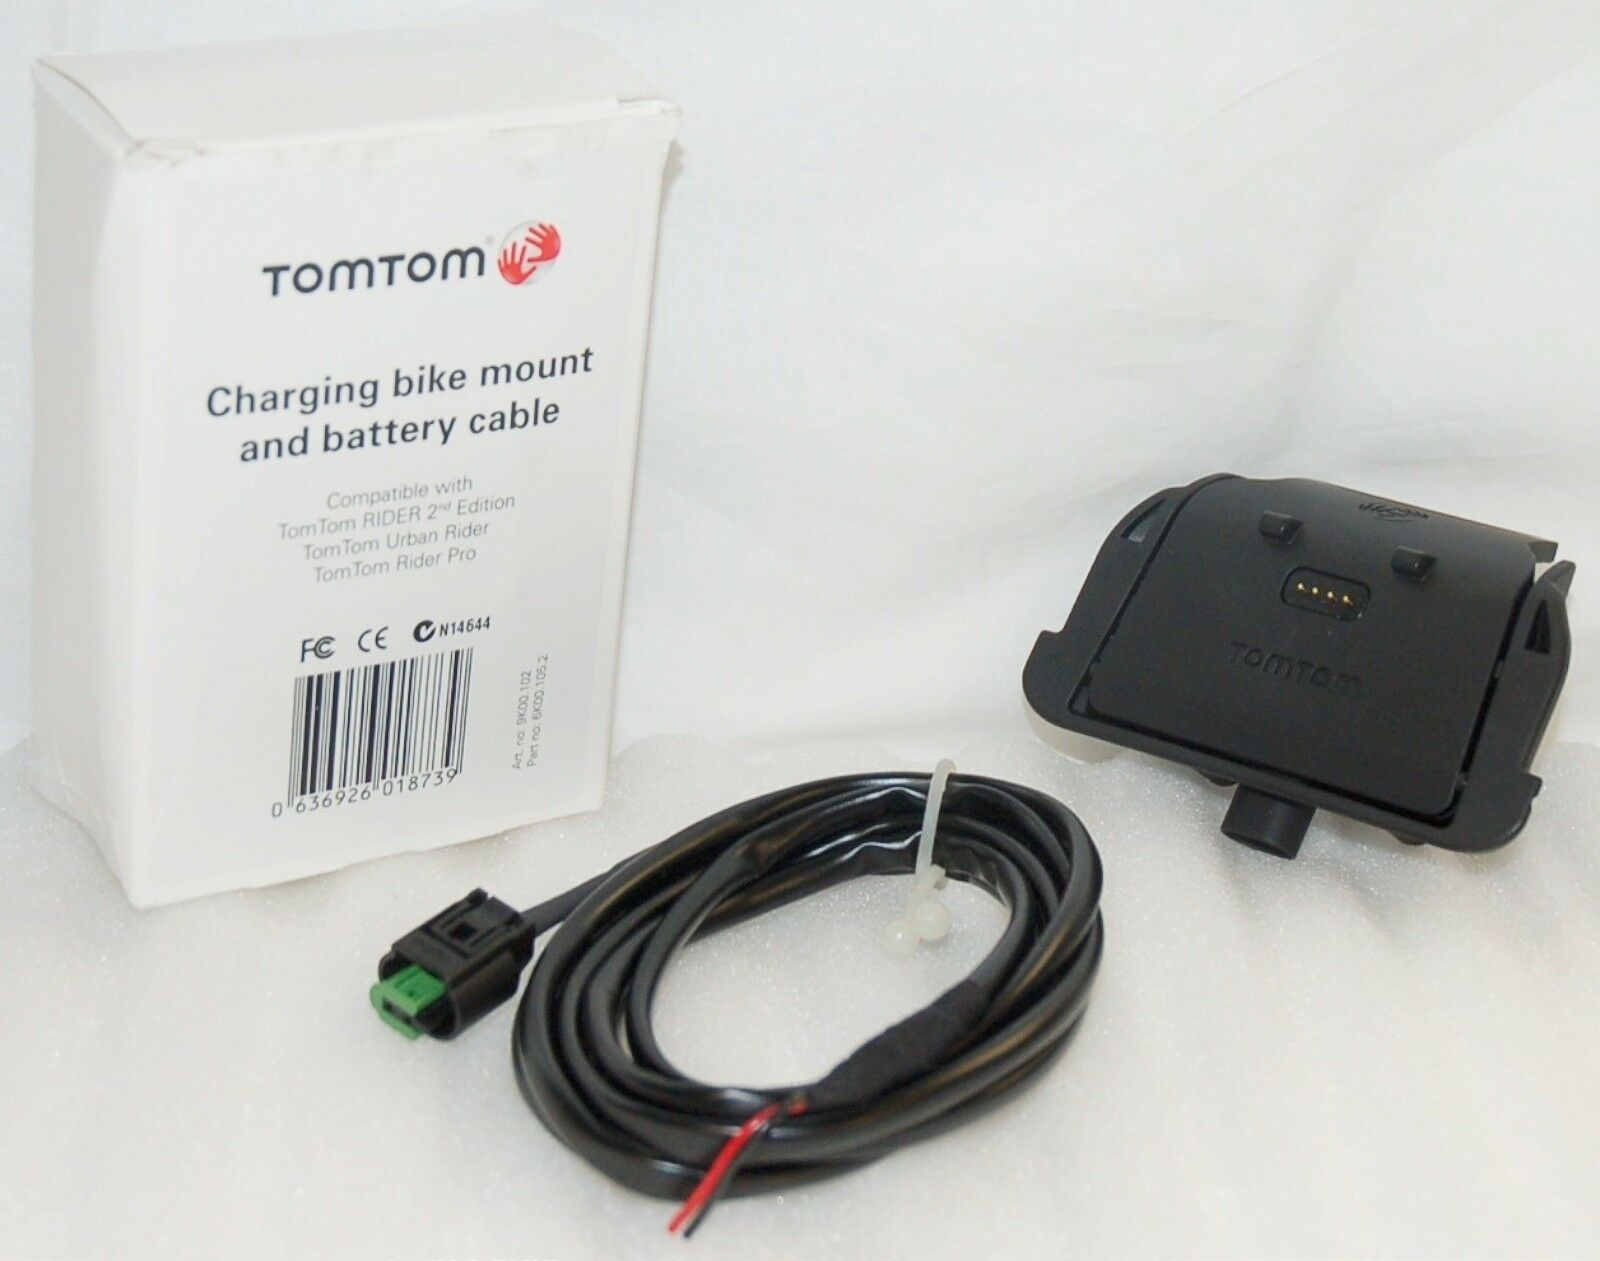 New Tomtom Rider 2 Motorcycle Dock Mount Cable 2nd Edition Bike